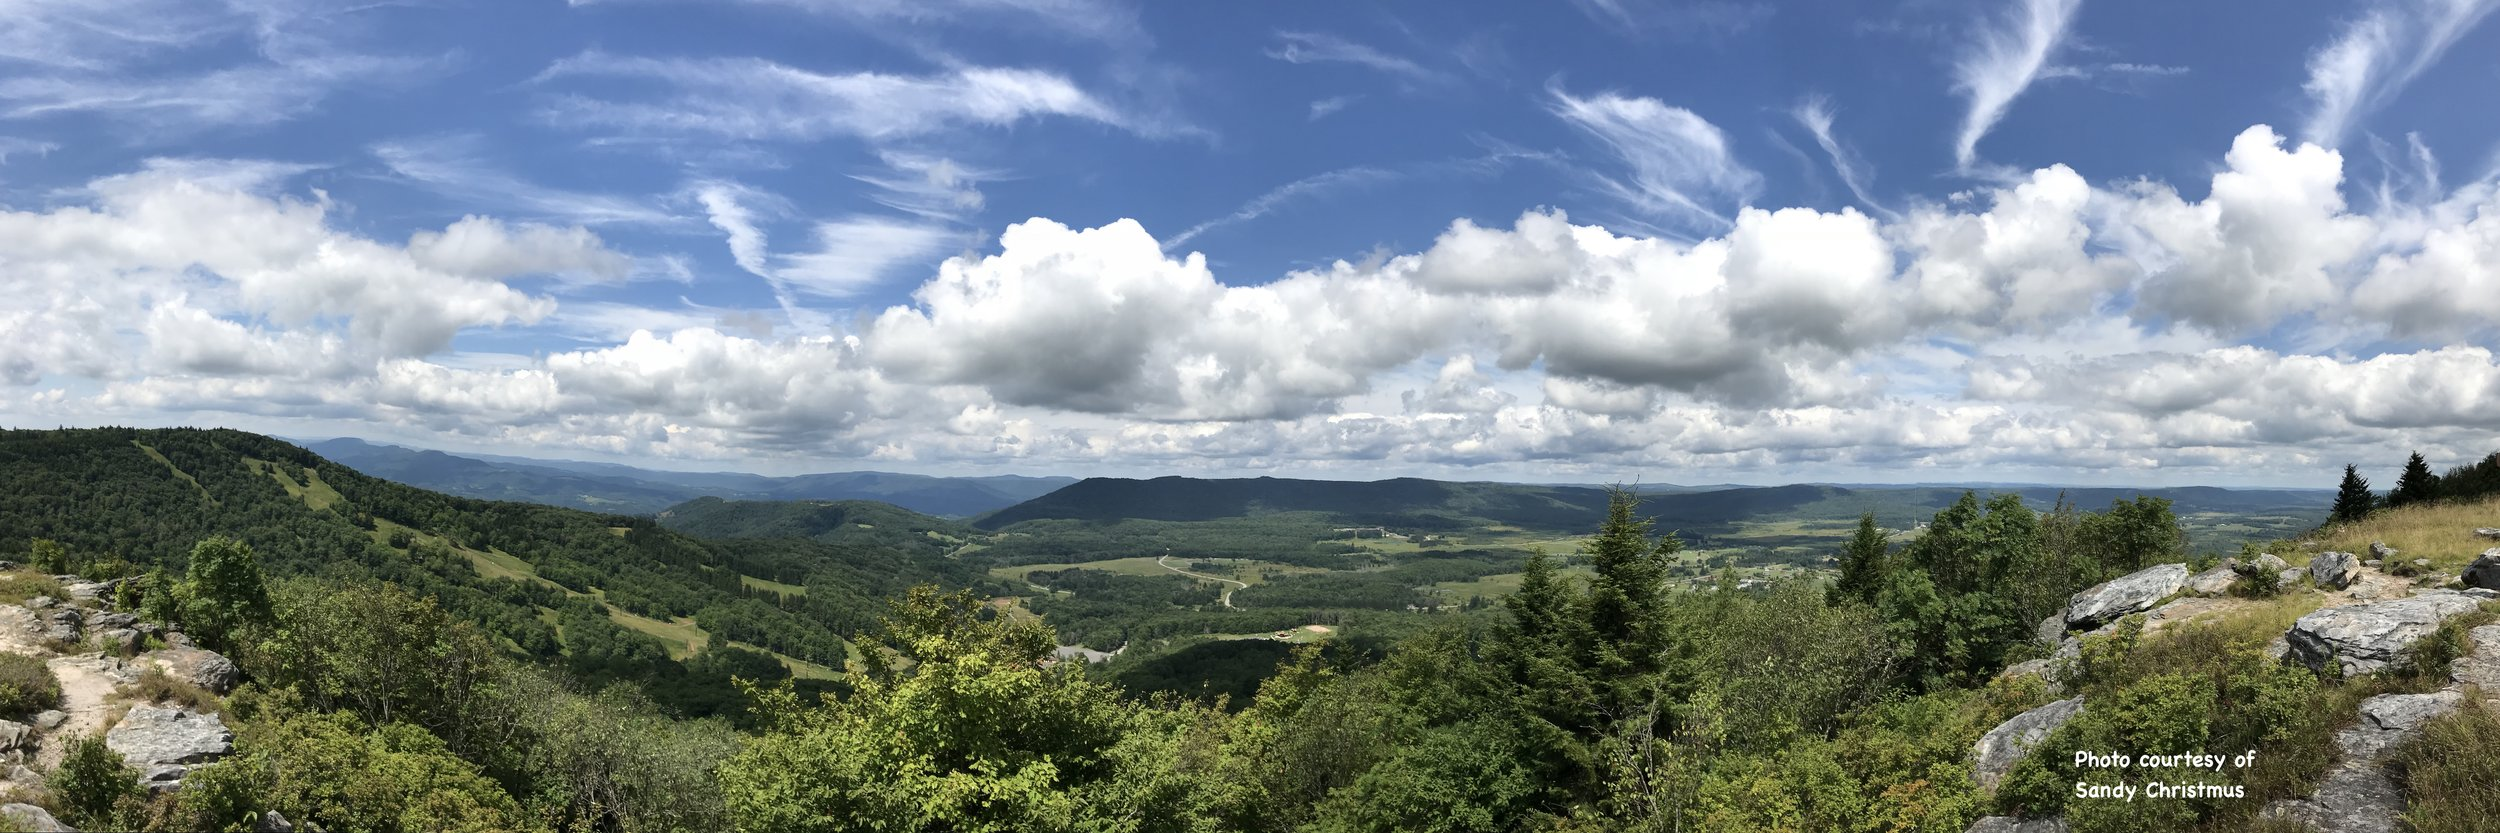 Come join us in beautiful Canaan Valley WV for your next group event.